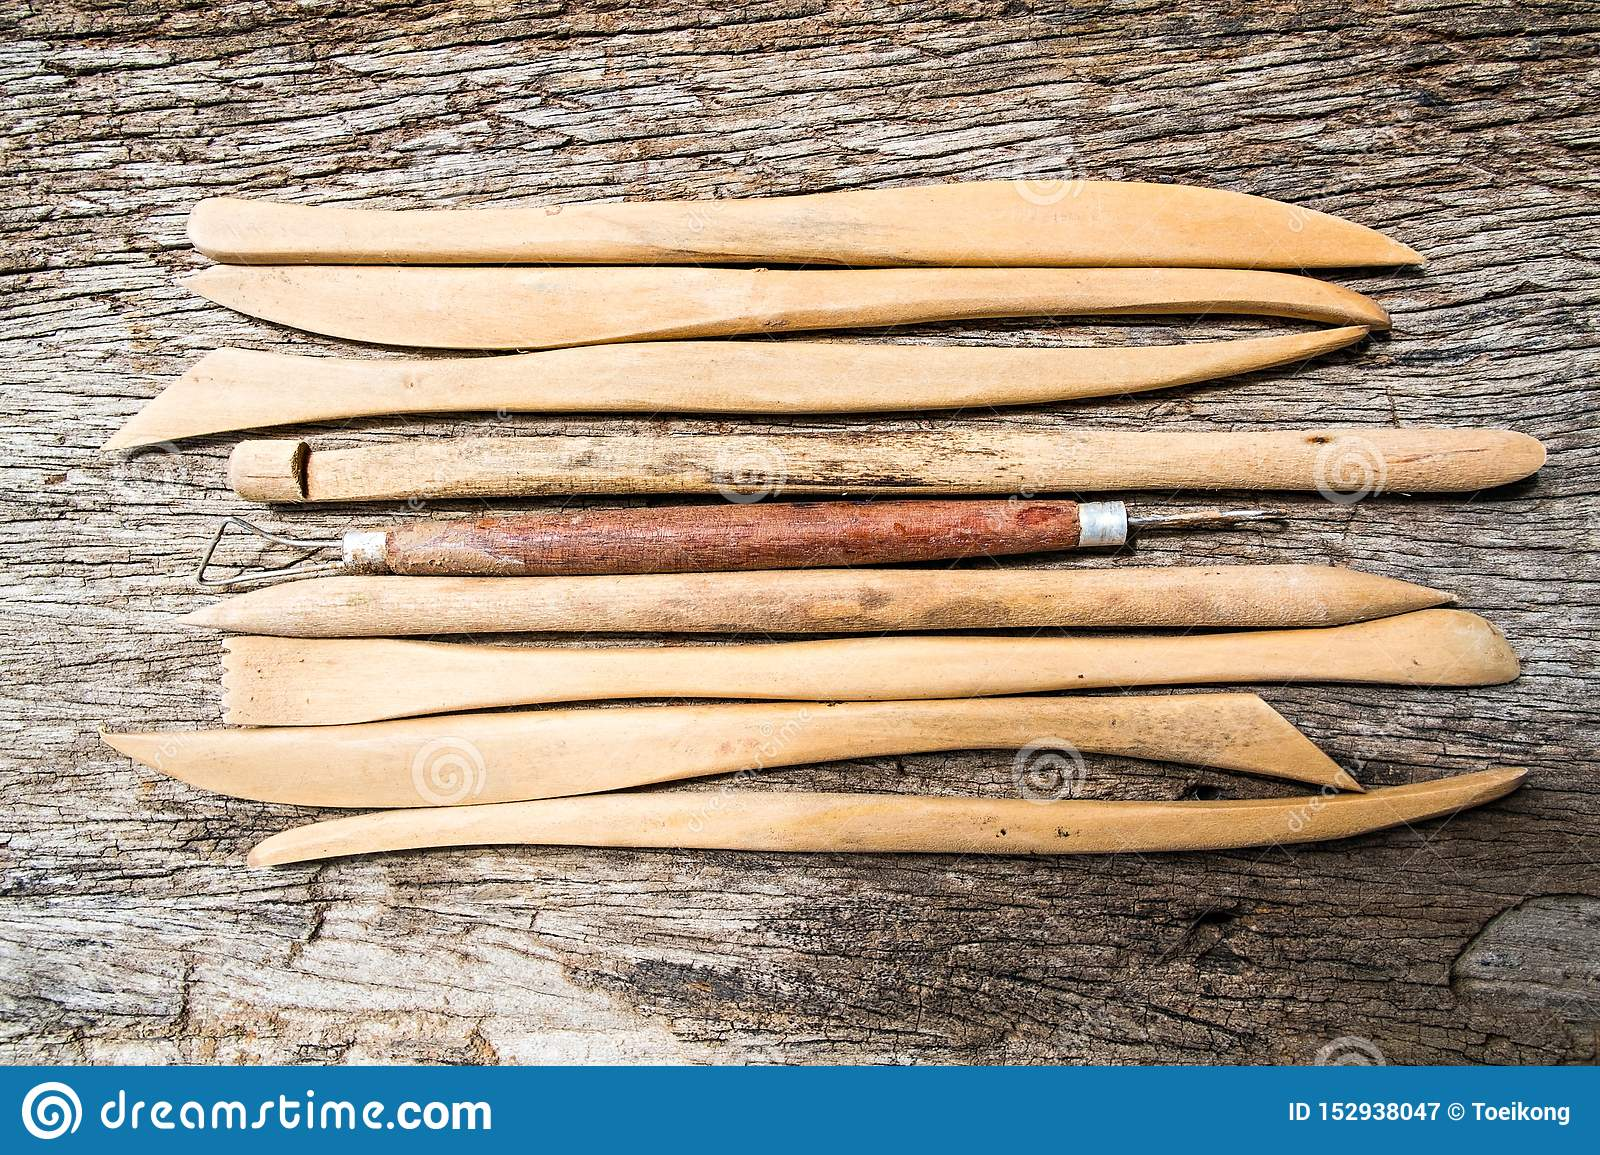 Pottery tools on wood background